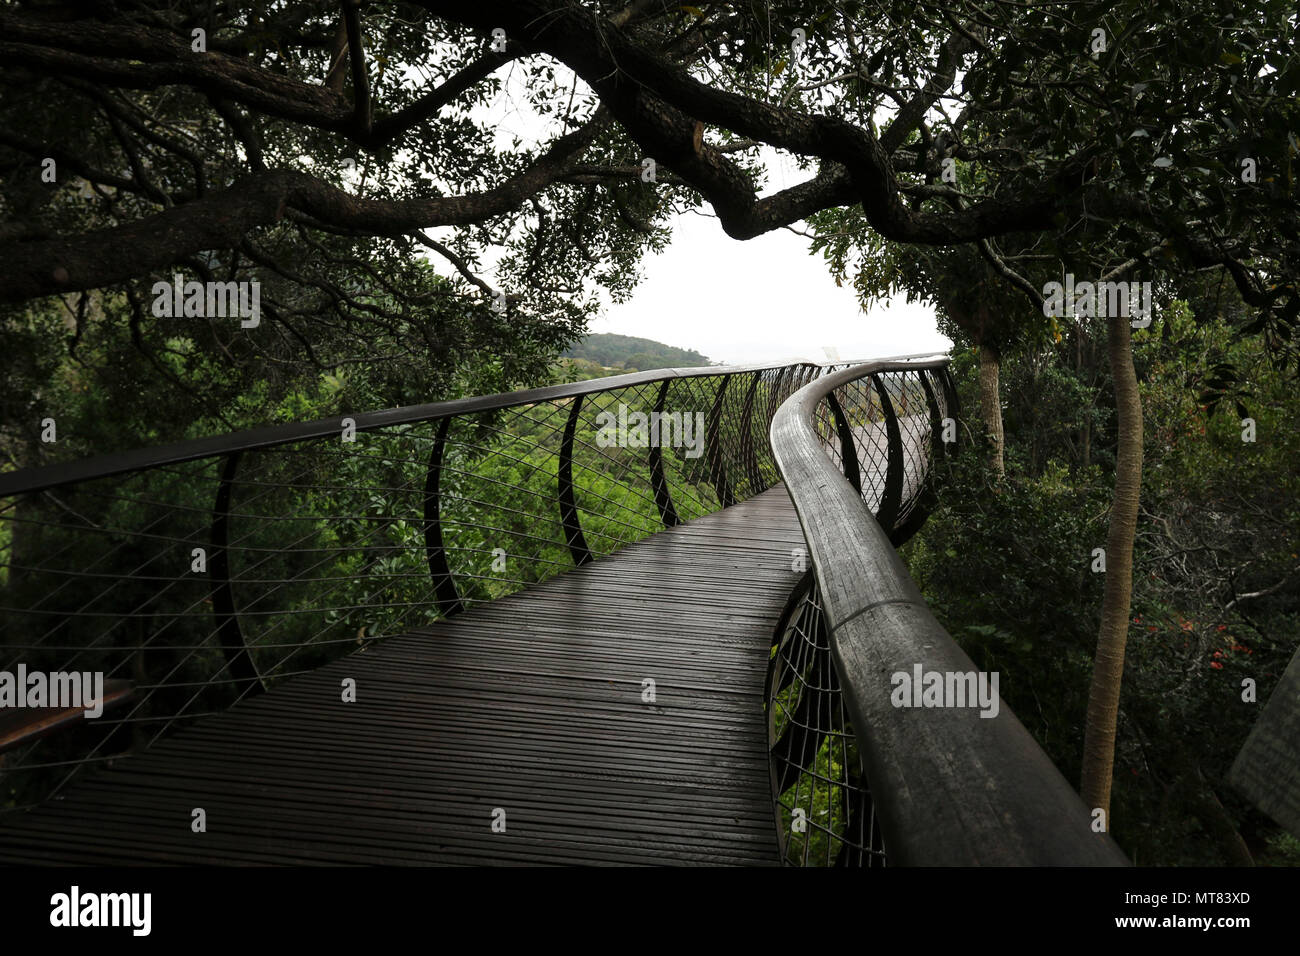 Wooden walkway through trees, Kirstenbosch botanic gardens, Capetown, South africa - Stock Image